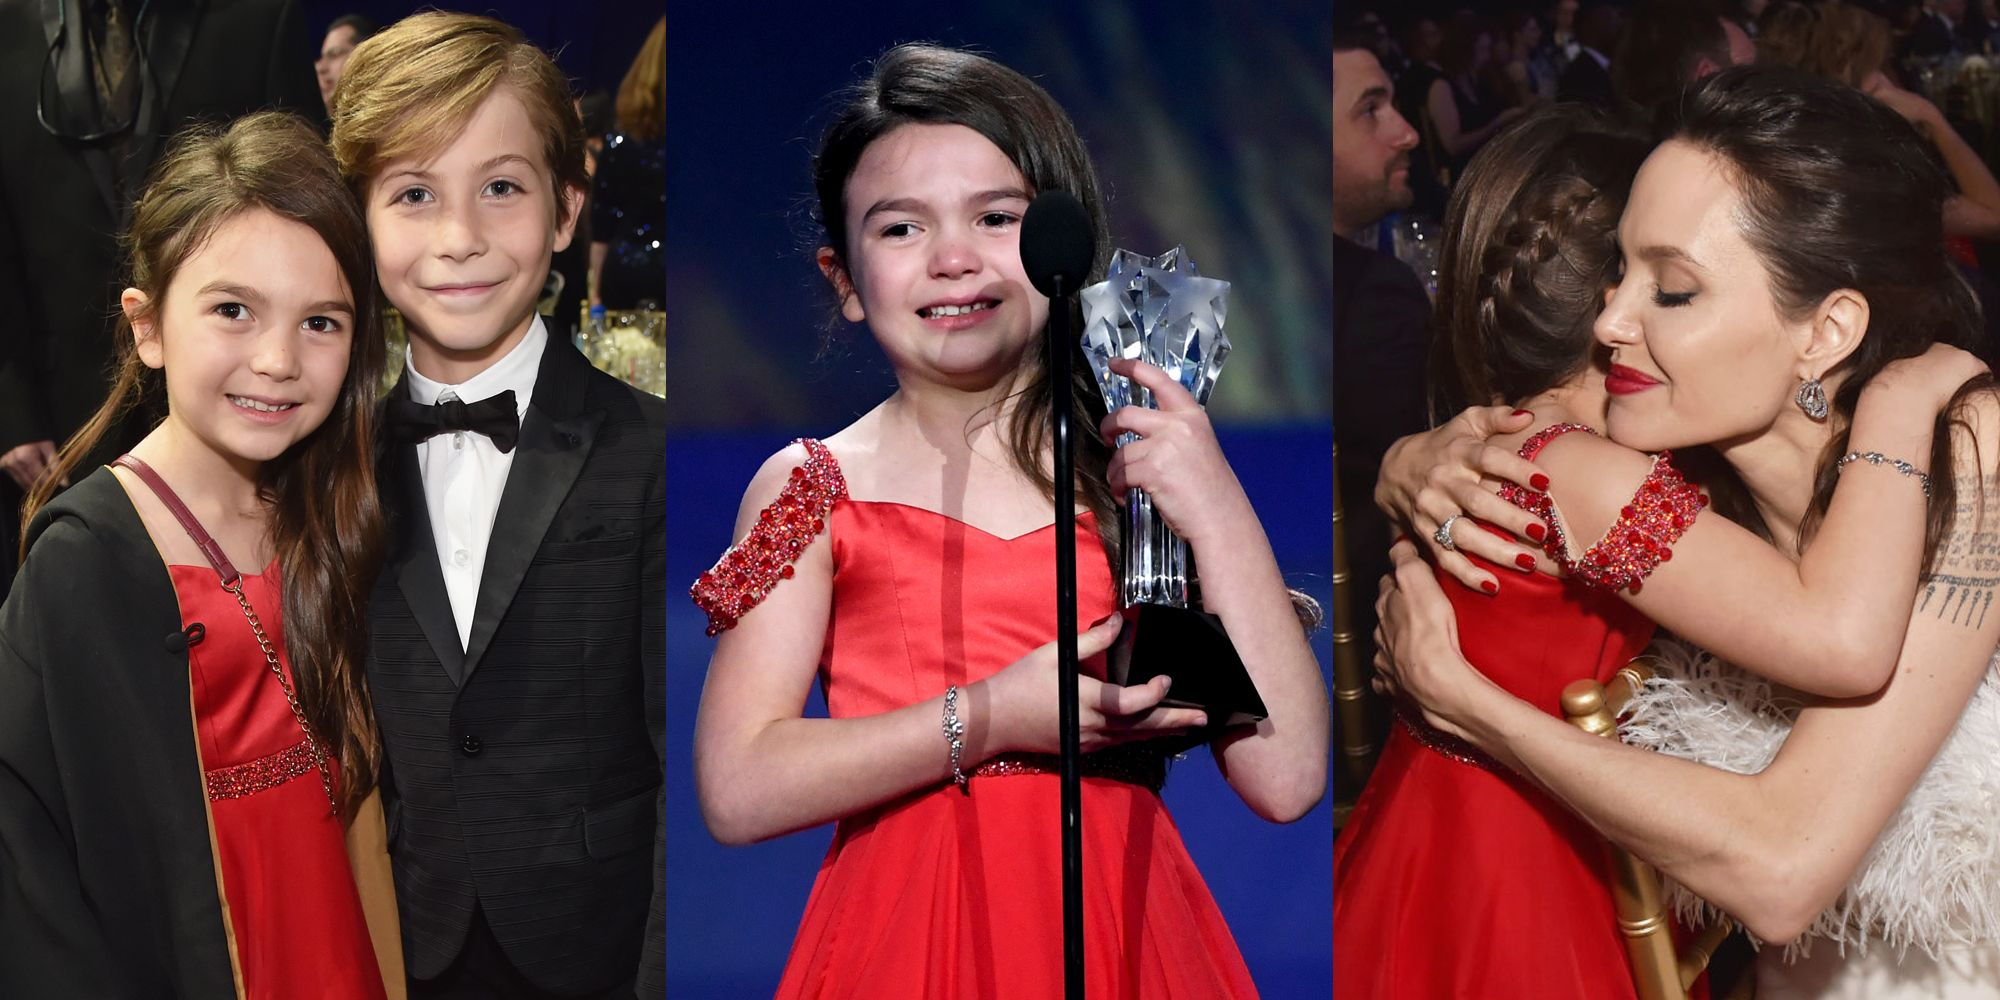 7-Year-Old Brooklynn Prince Was the Star of the Critics' Choice Awards